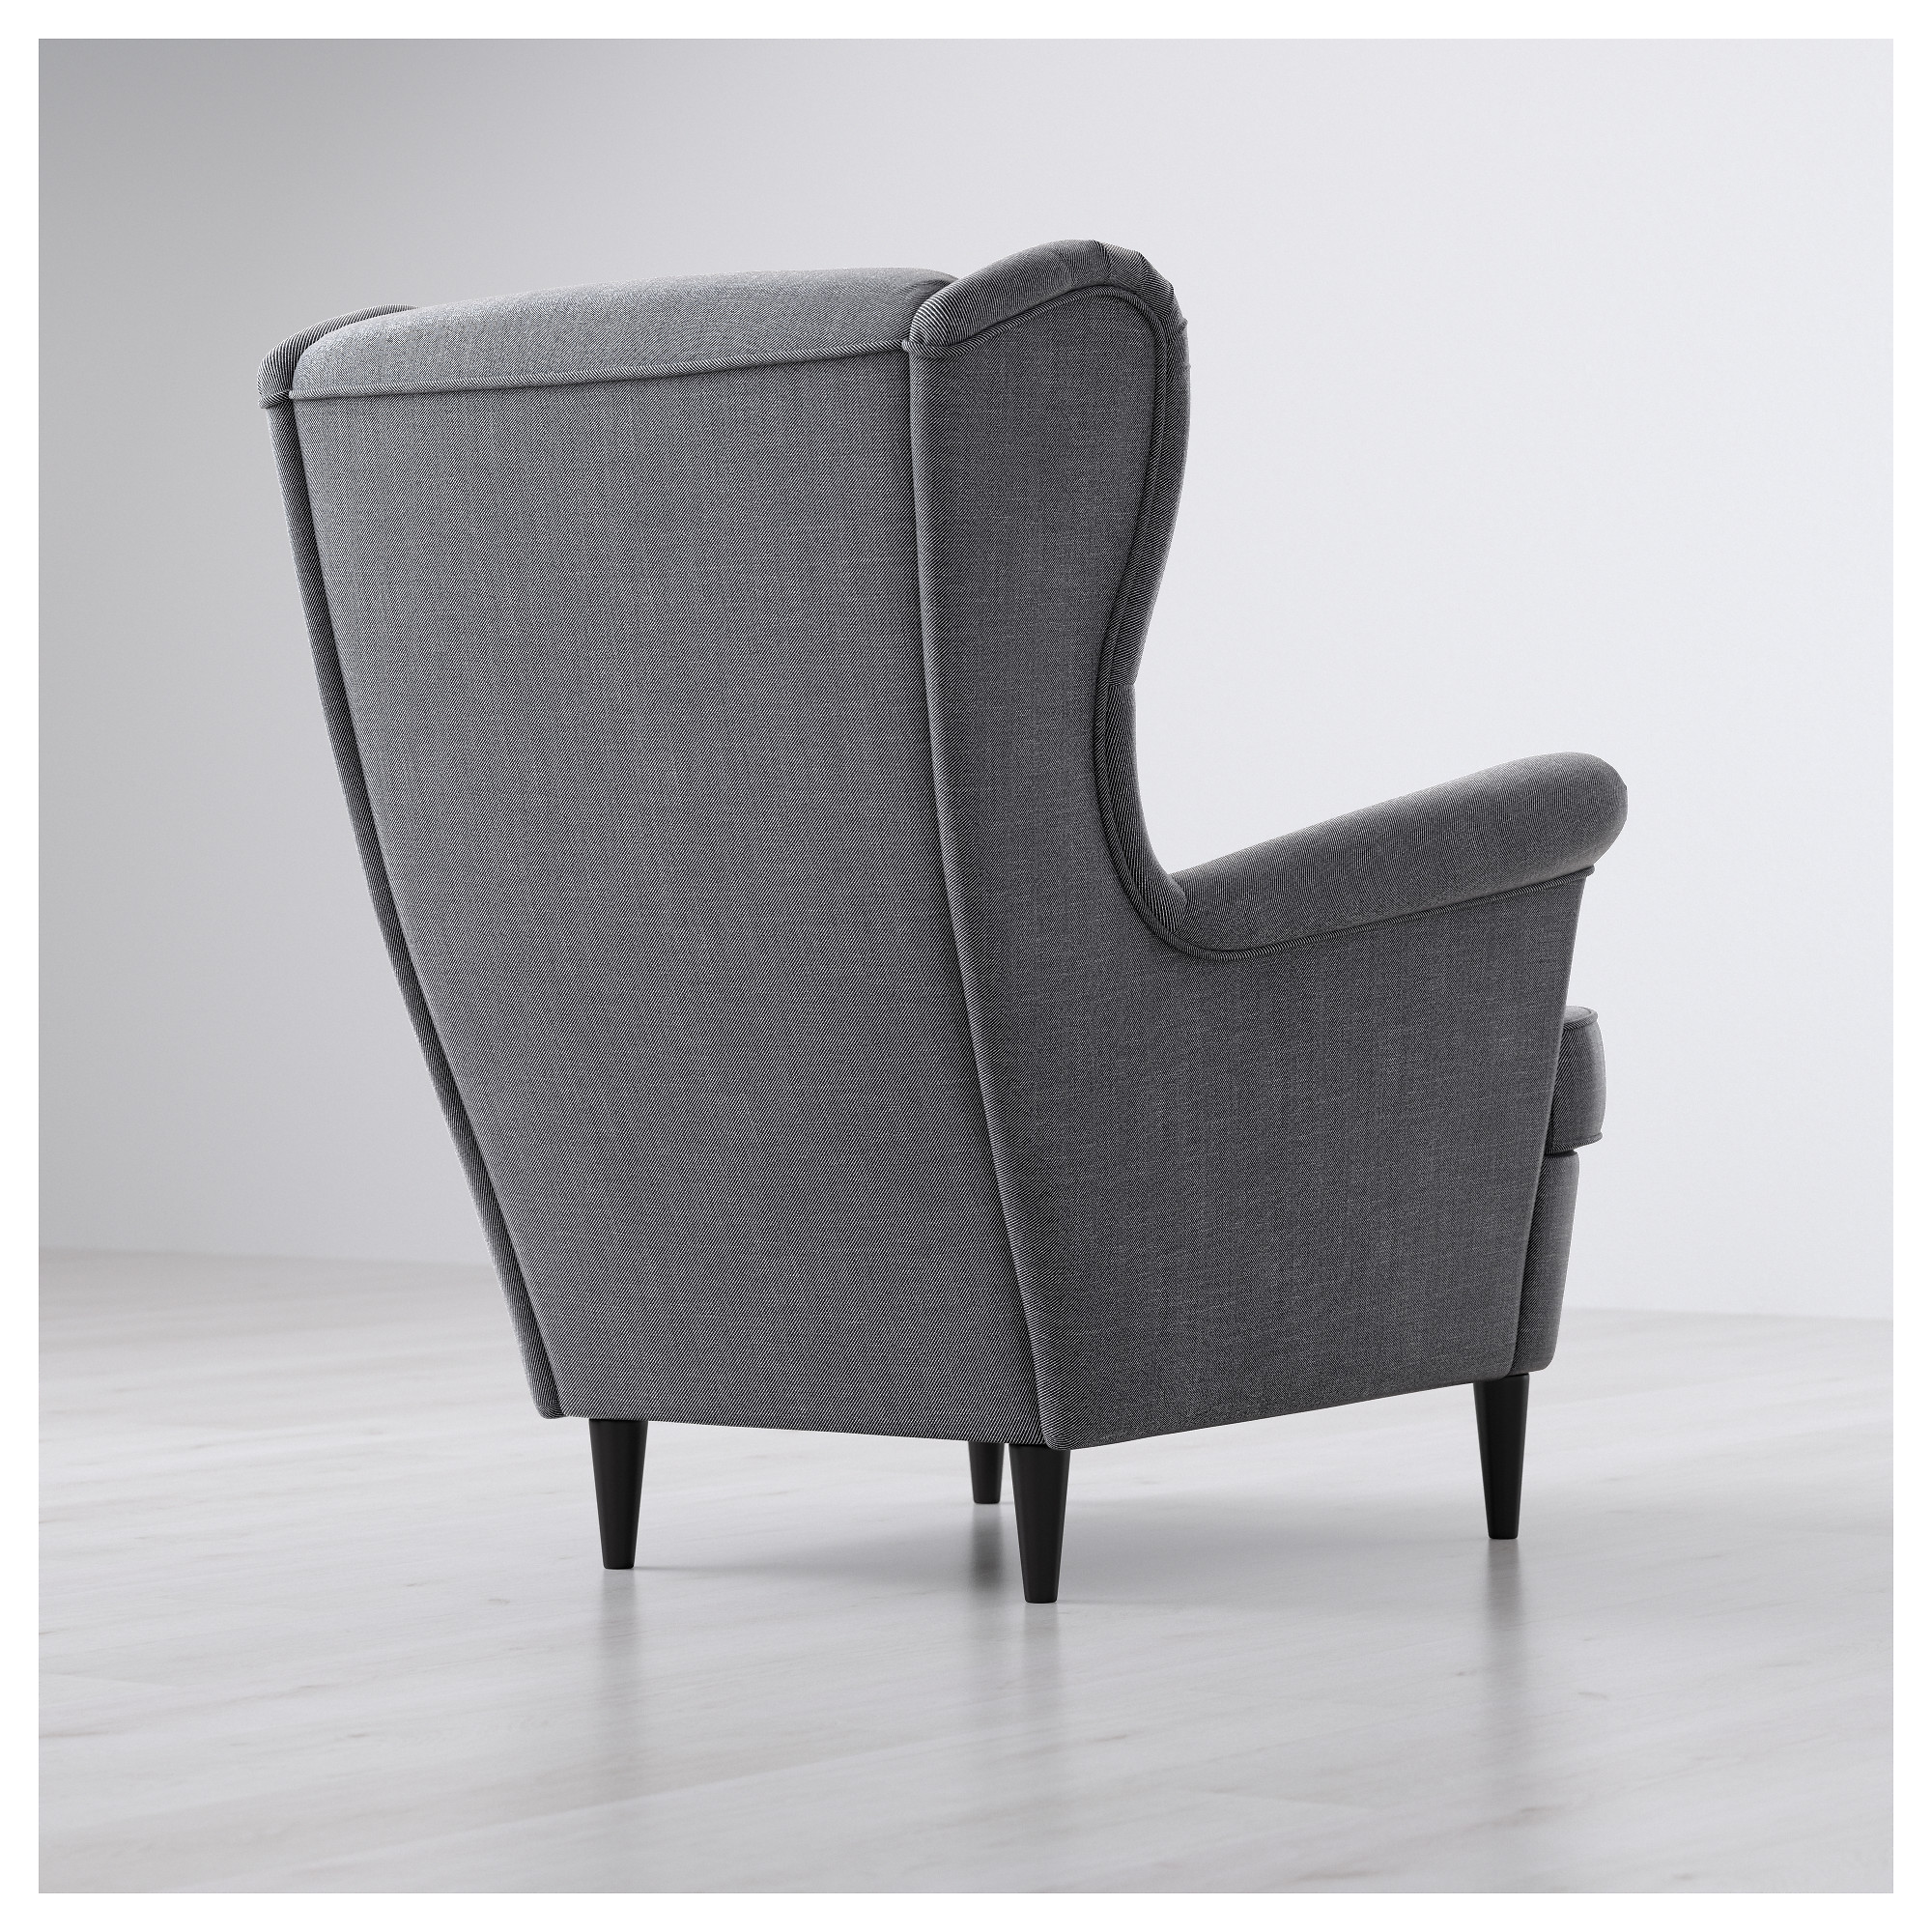 Amusing wing back chair with Solid Strong wood Furniture Design for Dining chair and Living Room Chair Ideas